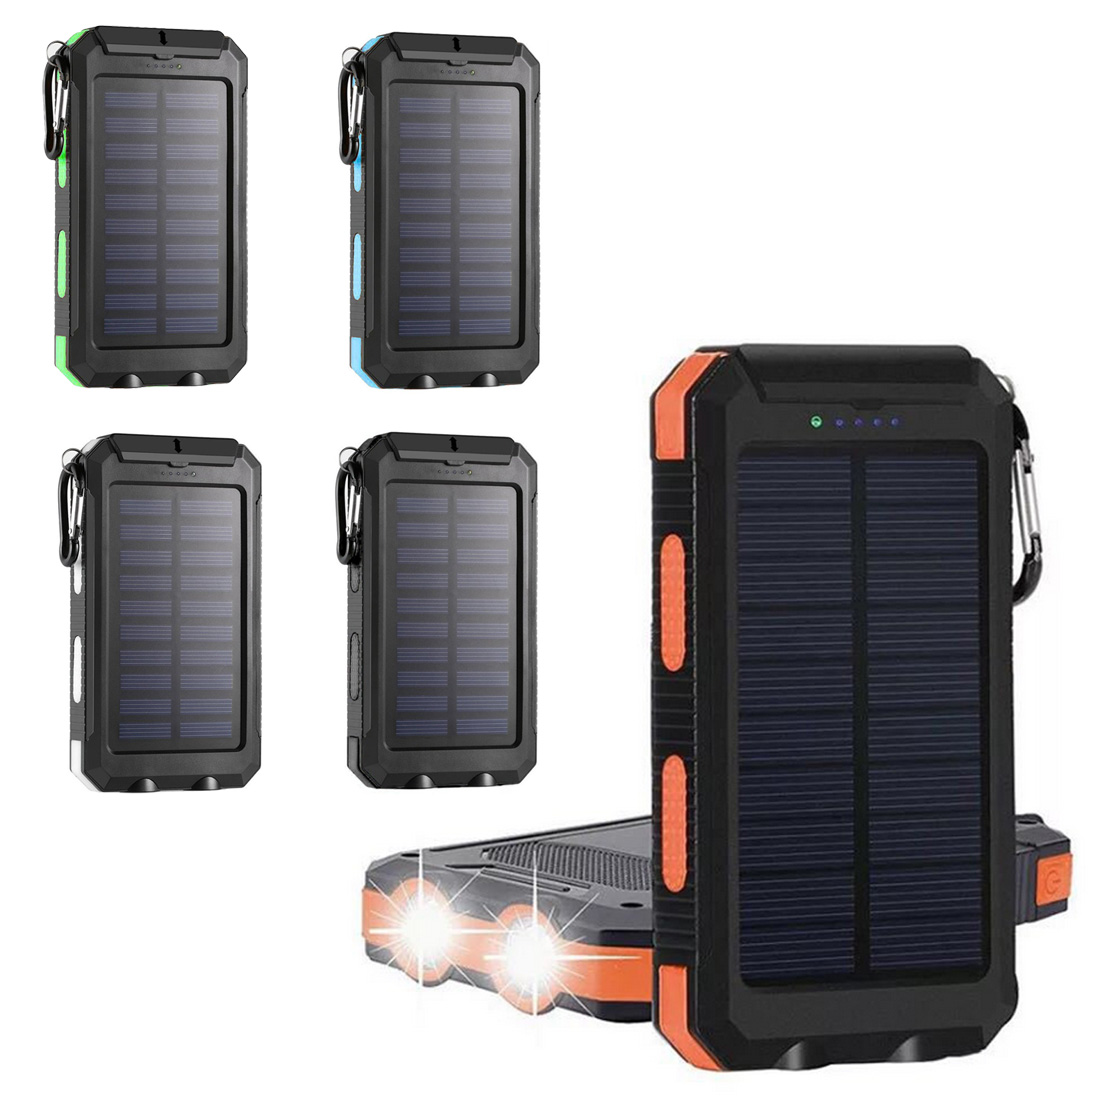 Multifunction Solar Mobile Power Supply Kit Led Solar Panel Charger Storage Box Outdoor Portable Power Bank Case No Battery new solar panel 30000mah diy waterproof power bank 2 usb solar charger case external battery charger accessories